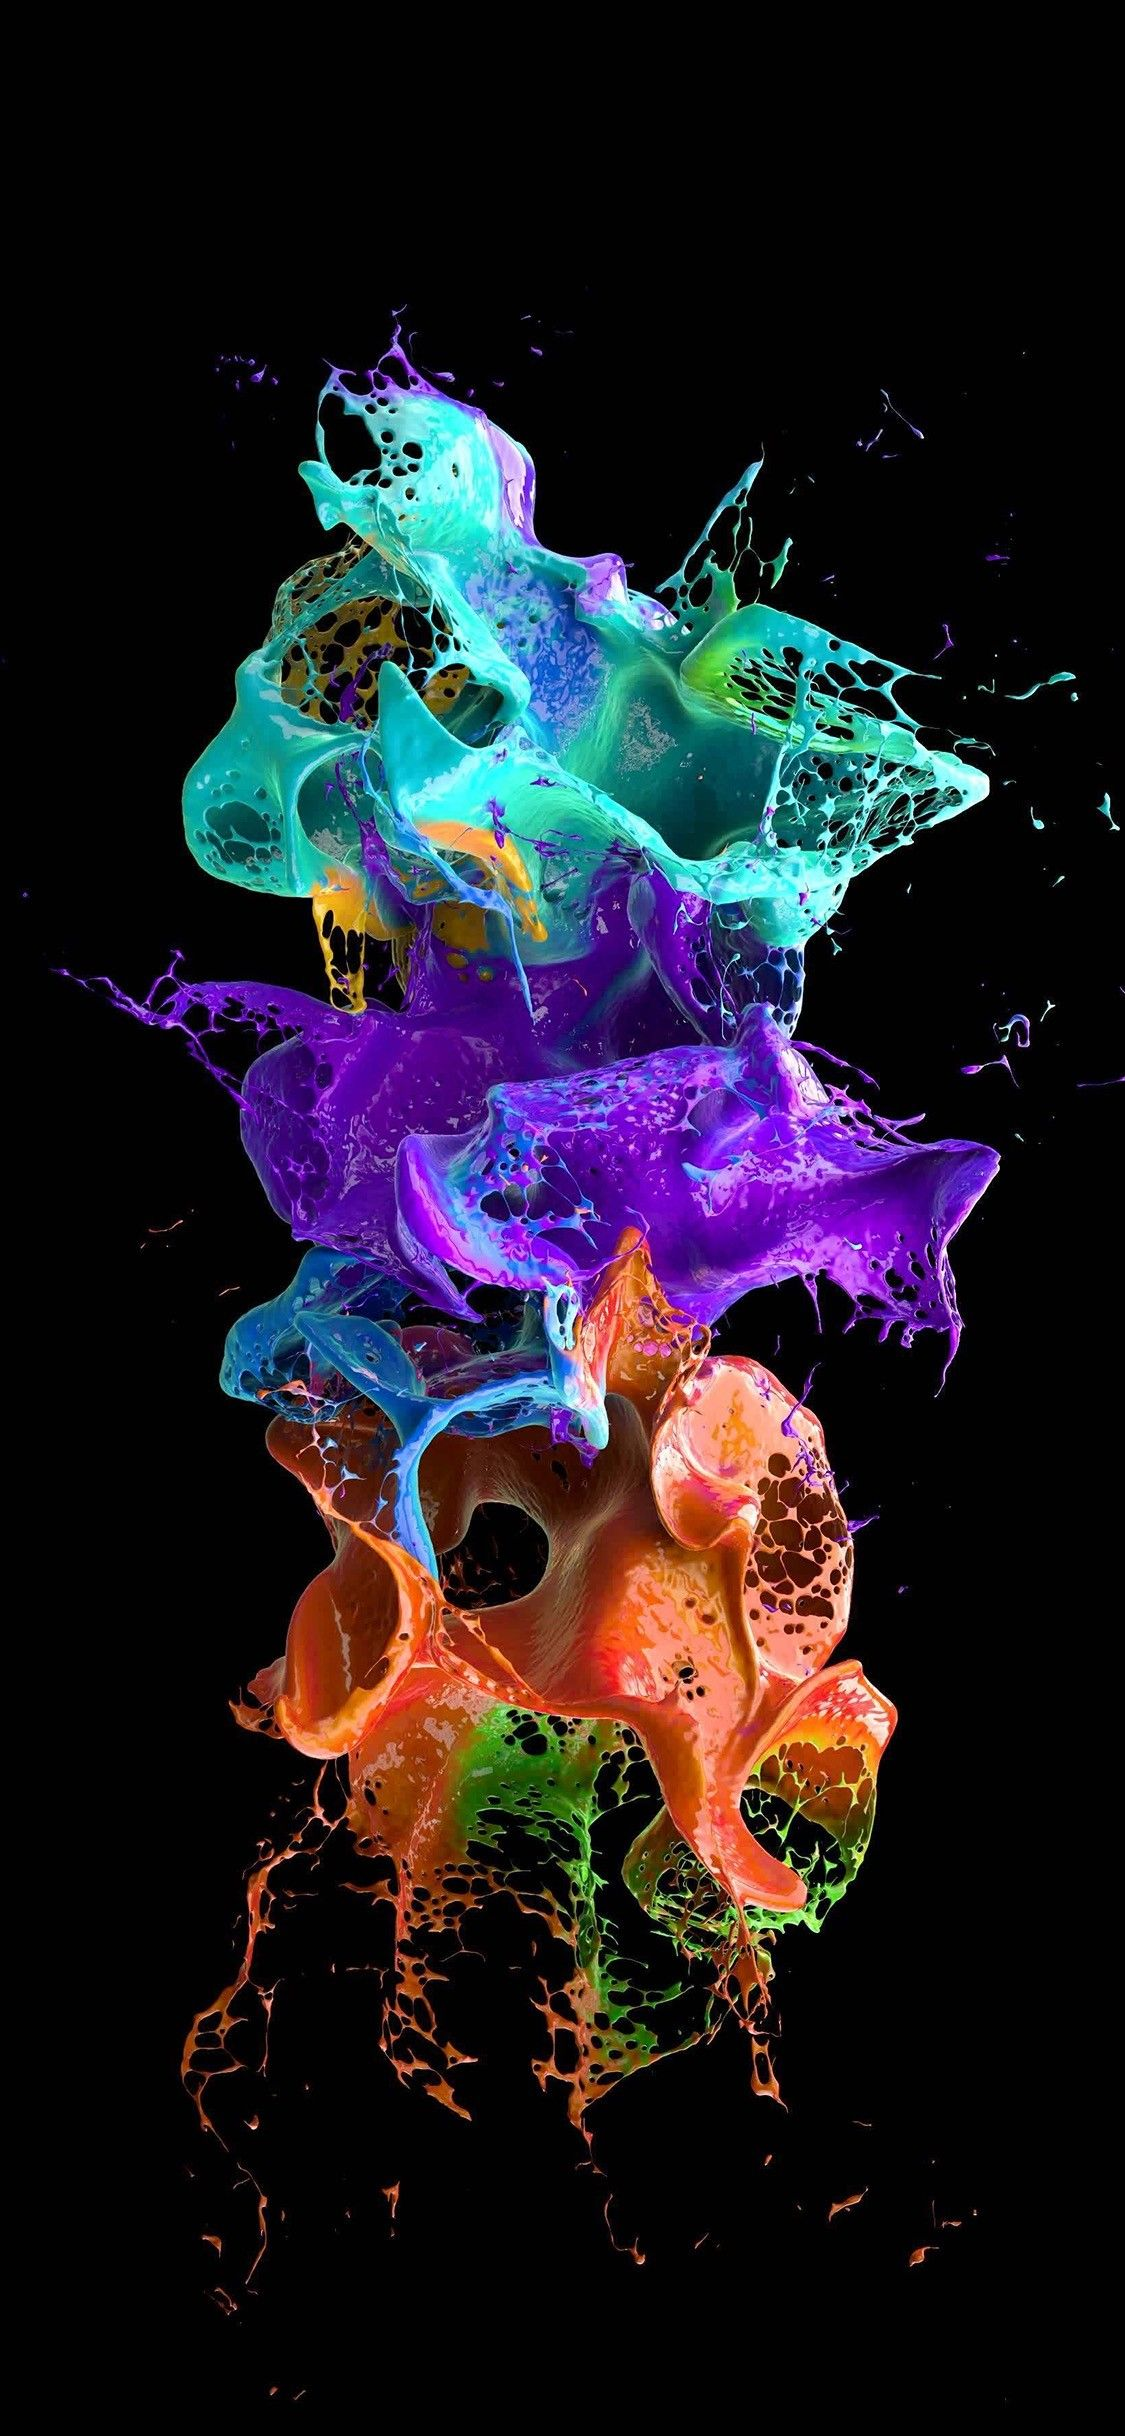 Pin By Branddirections Digital Stra On Abstract Amoled Liquid Gradient Iphone Wallpaper Video Live Wallpaper Iphone Iphone Background Wallpaper